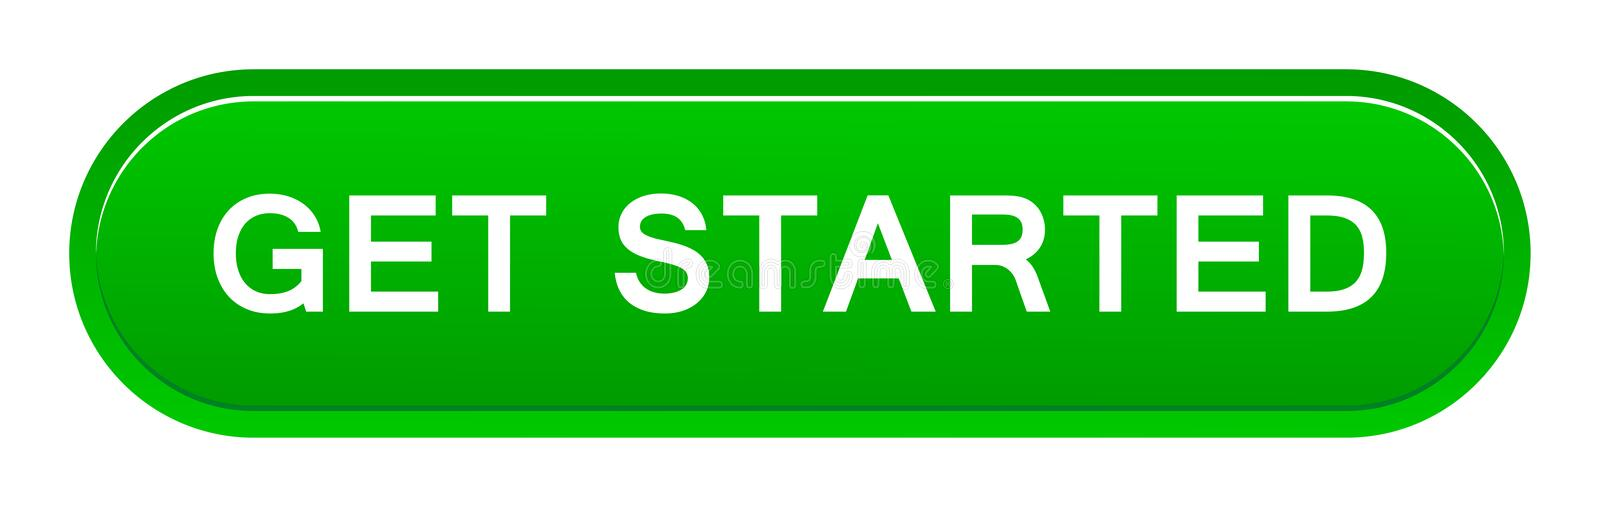 Get started button royalty free illustration